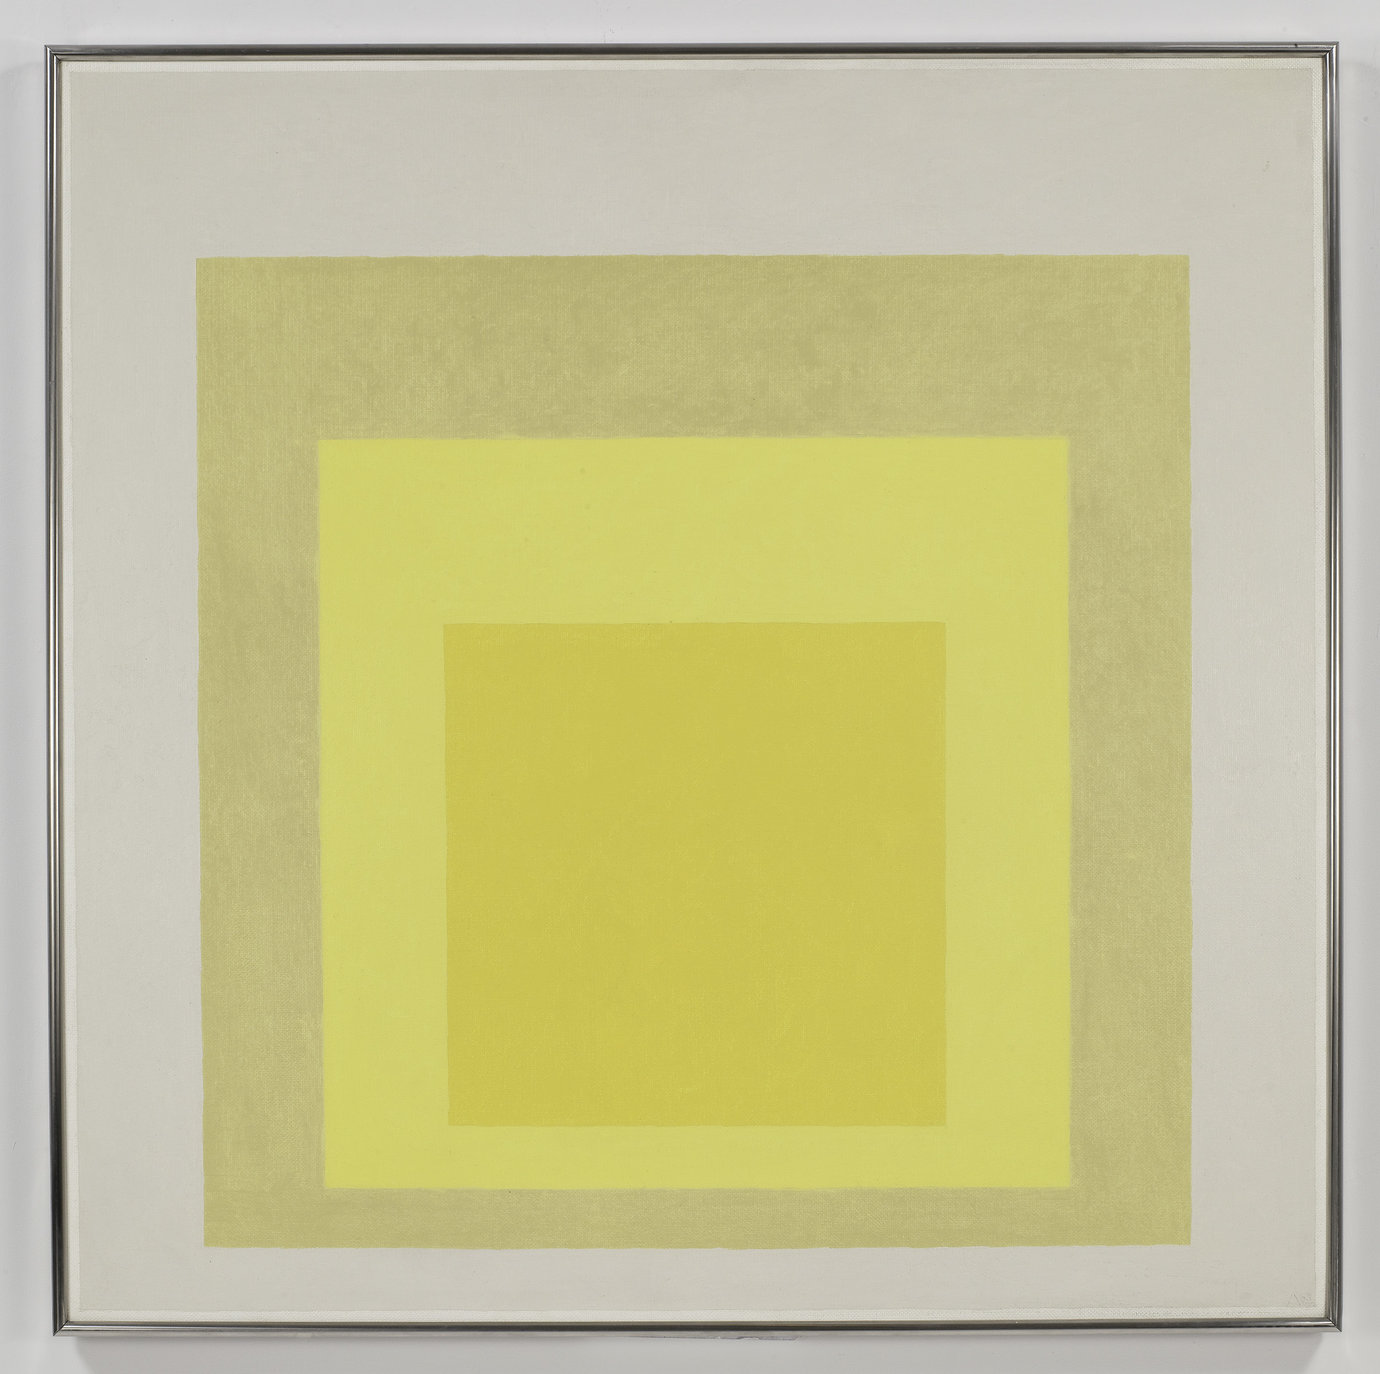 ", 1963. oil on masonite, 40 x 40""  (101.6 x 101.6 cm)."